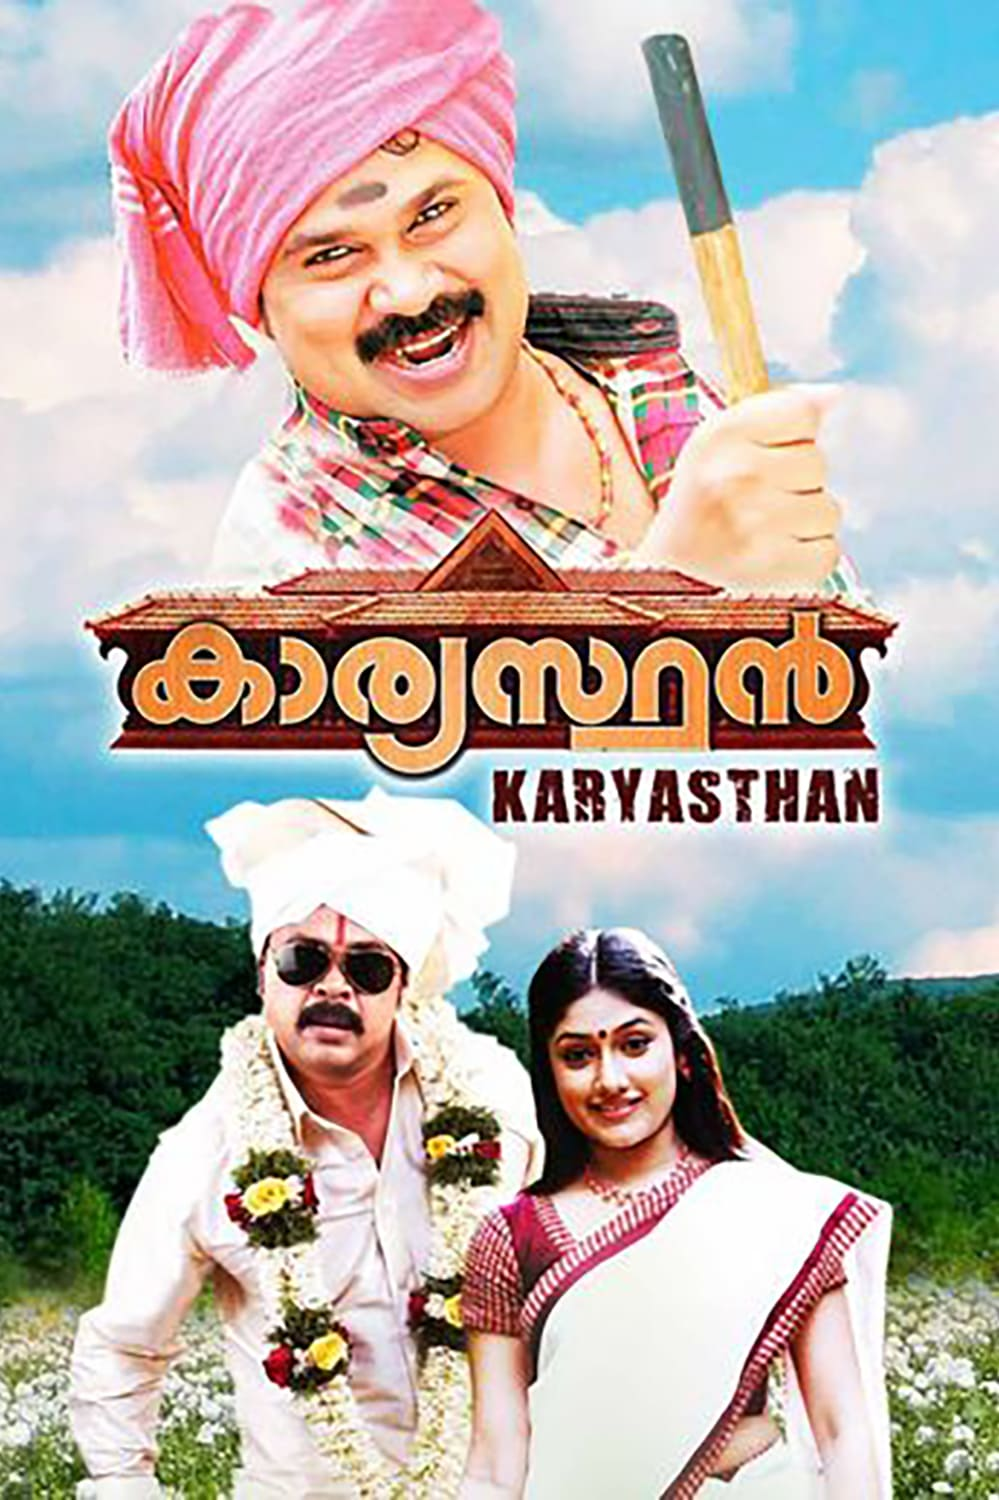 Kaaryasthan Movie Streaming Online Watch on Google Play, Manorama MAX, Youtube